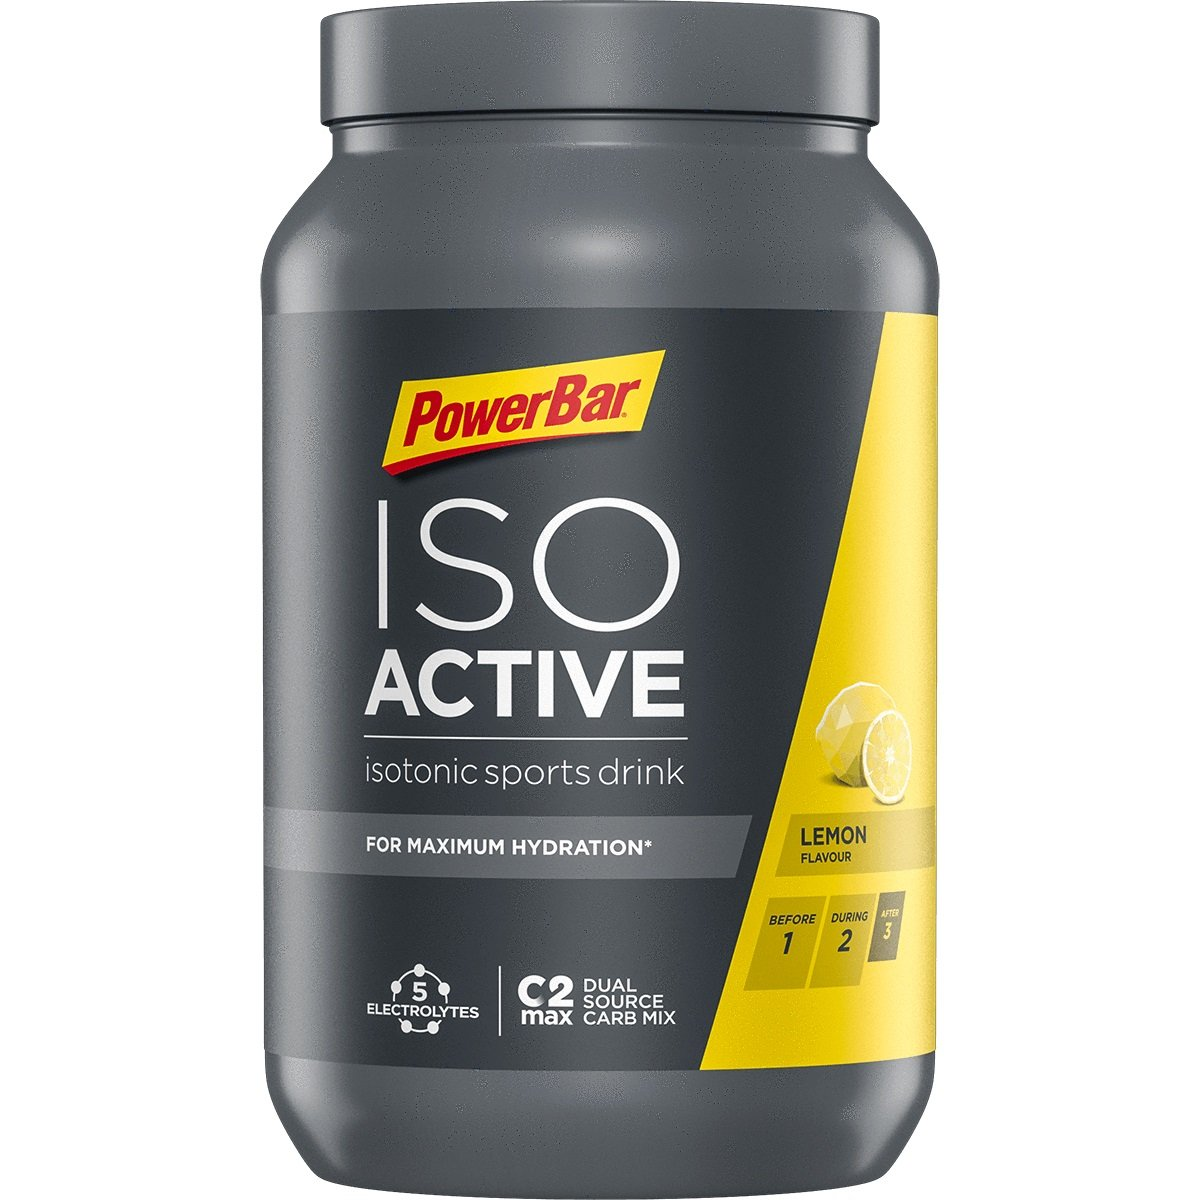 Image of PowerBar Isoactive Isotonic Sports Drink 1.3kg